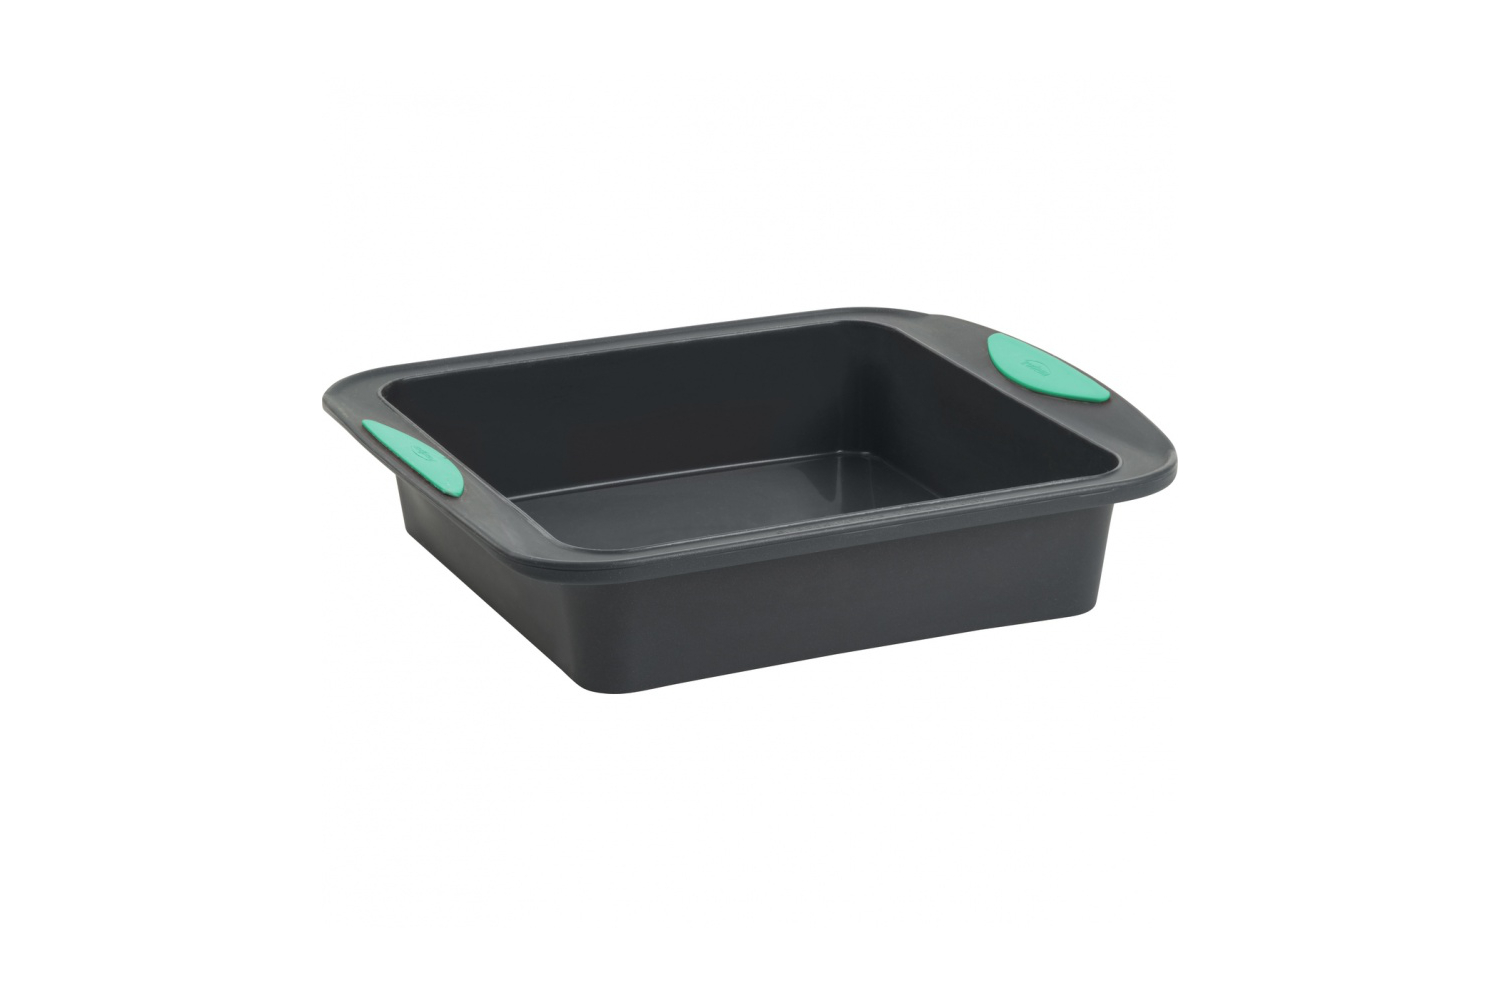 Trudeau Silicone 8 x 8 inch Cake Pan